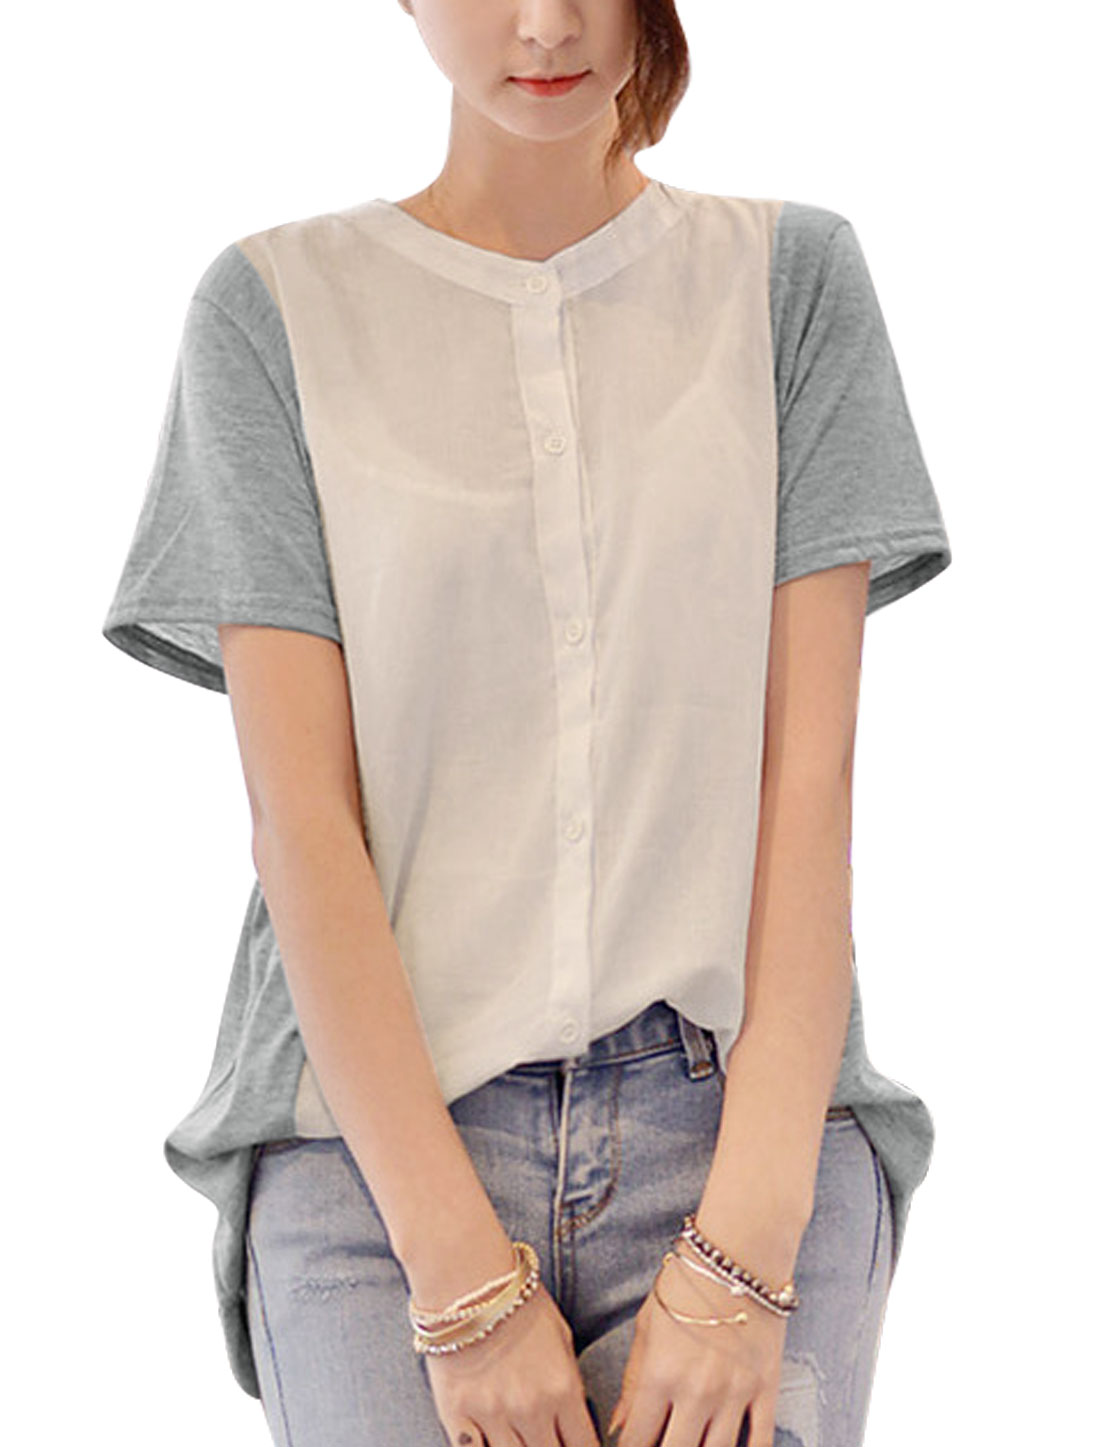 Women Stand Collar Short Sleeves Panel Design Casual Shirts Light Gray White XS